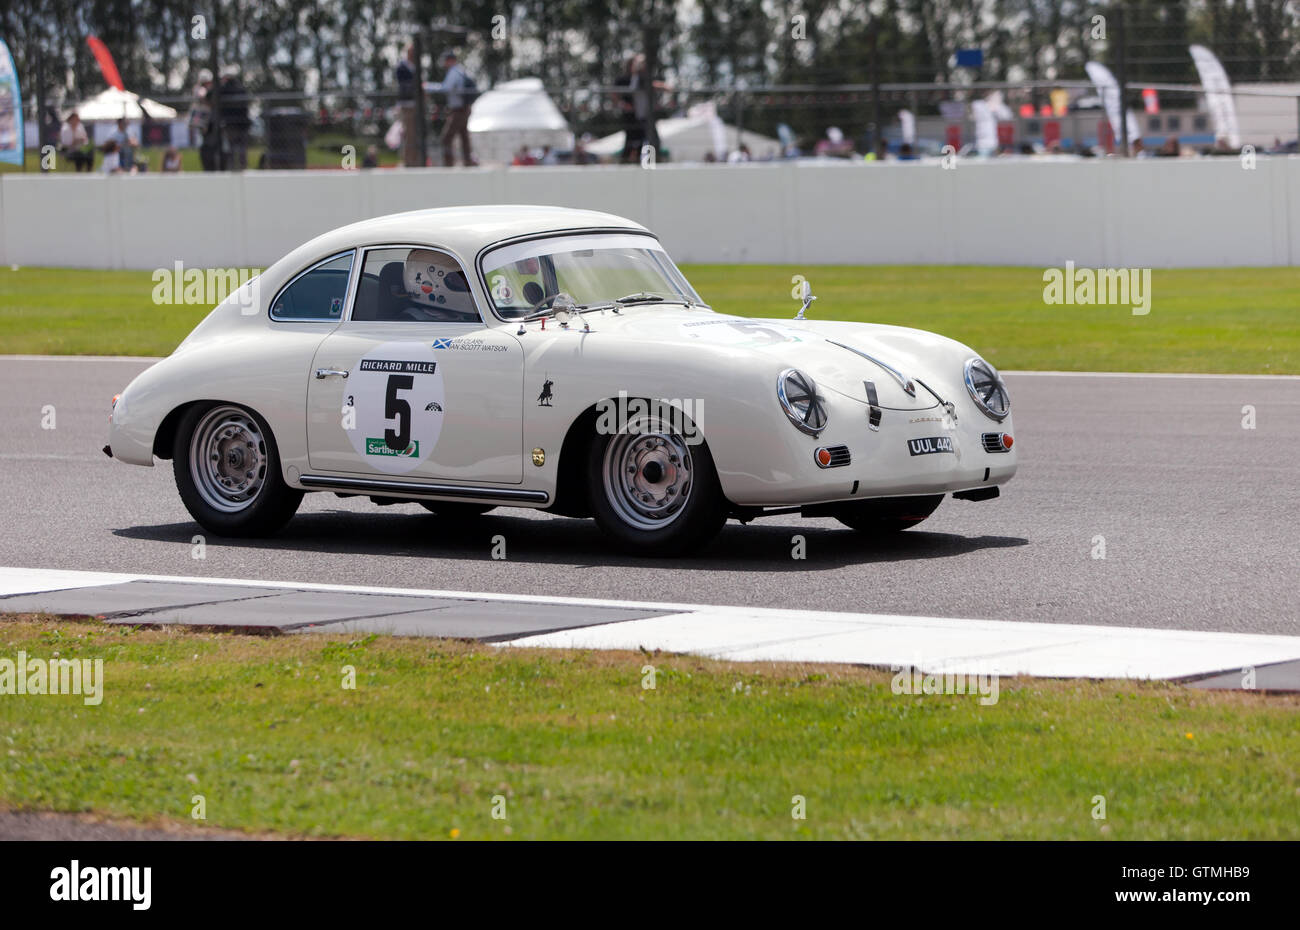 A  1957 Porsche 356, driven by Tom Pead during the qualifying session for the RAC Tourist Trophy for Historic Cars - Stock Image